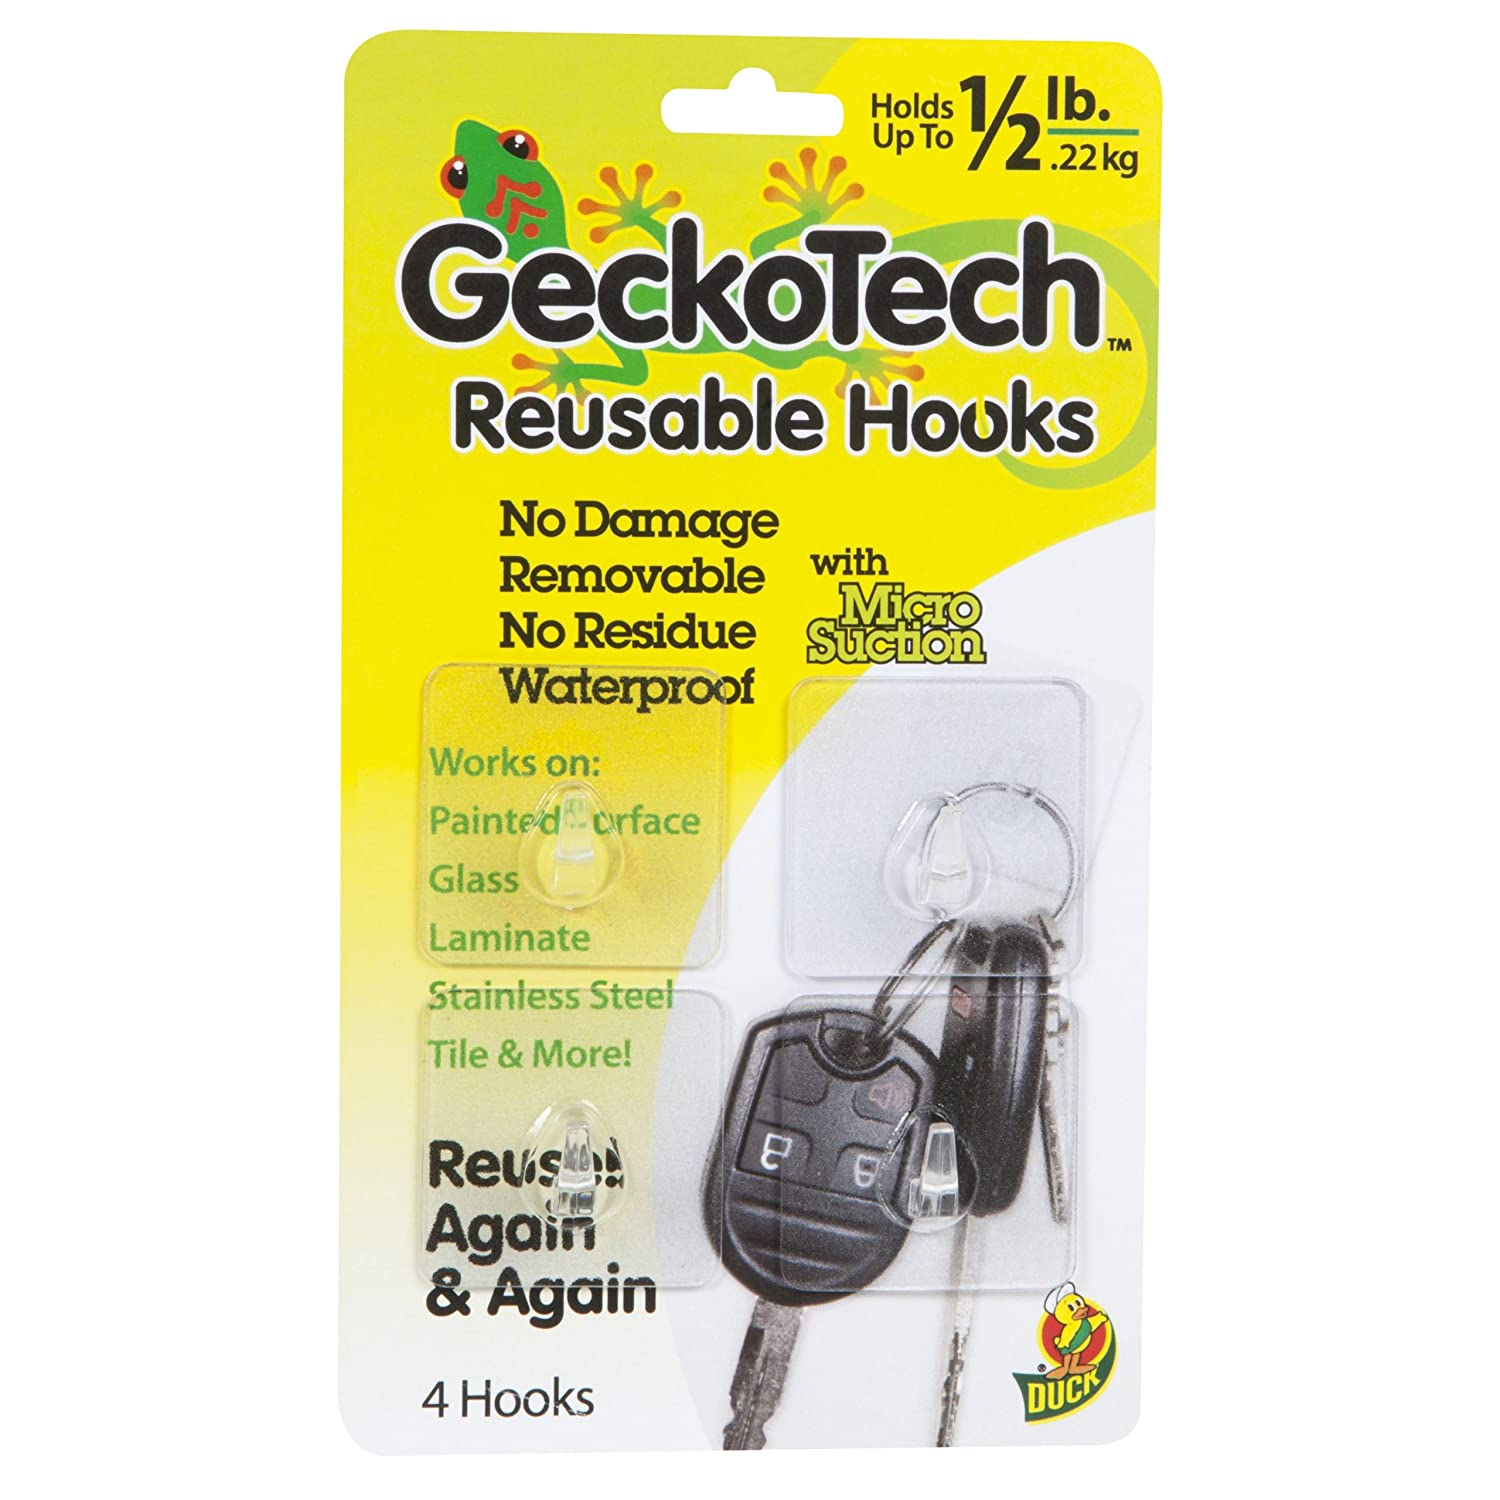 5-Pound GeckoTech 282314 Removable 1-Pack Reusable Hook with Microsuction Technology